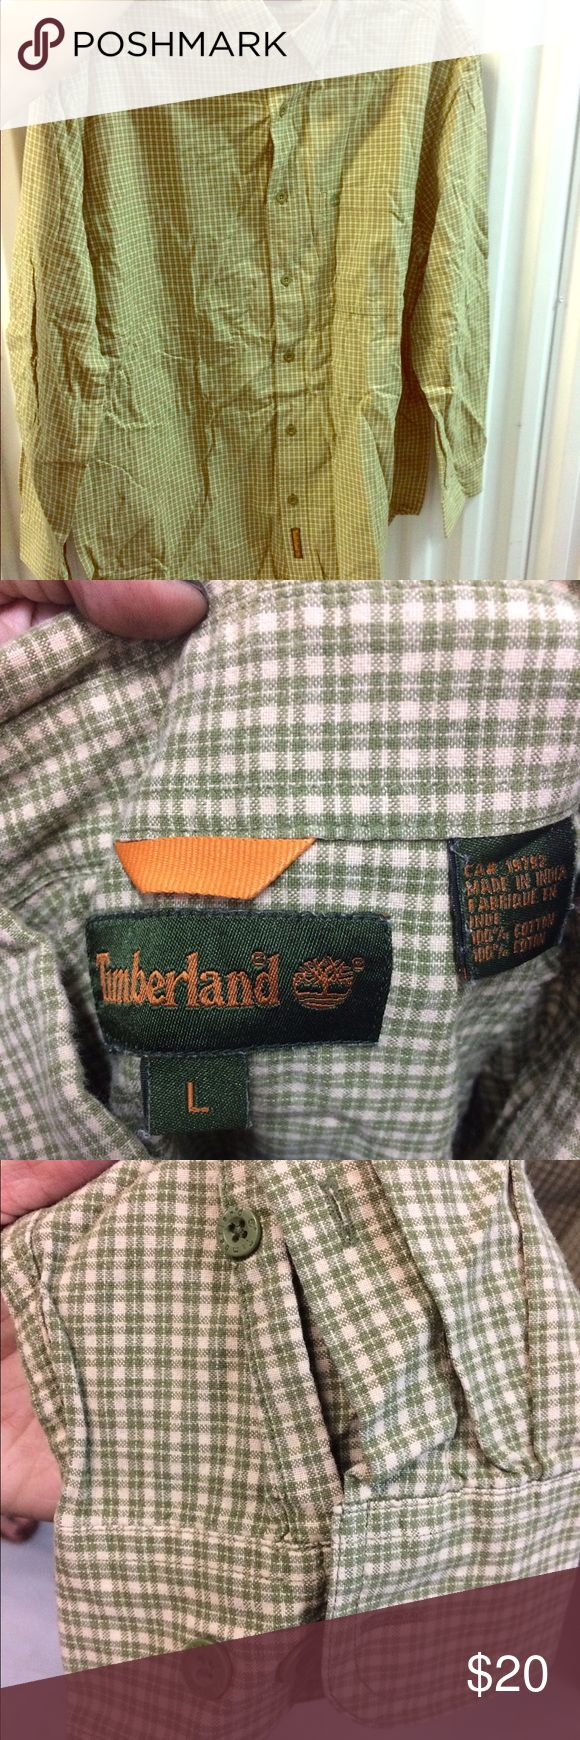 Timberland sz L green & white plaid button down Timberland sz L green & white plaid button down. Green/khaki and white plaid button down shirt with green buttons on the sleeves. Men's size large. Preowned but looks new. #timberland #large #green #khaki #plaid #white #buttondown #comfortable #career #mens #preowned #likenew Timberland Shirts Casual Button Down Shirts